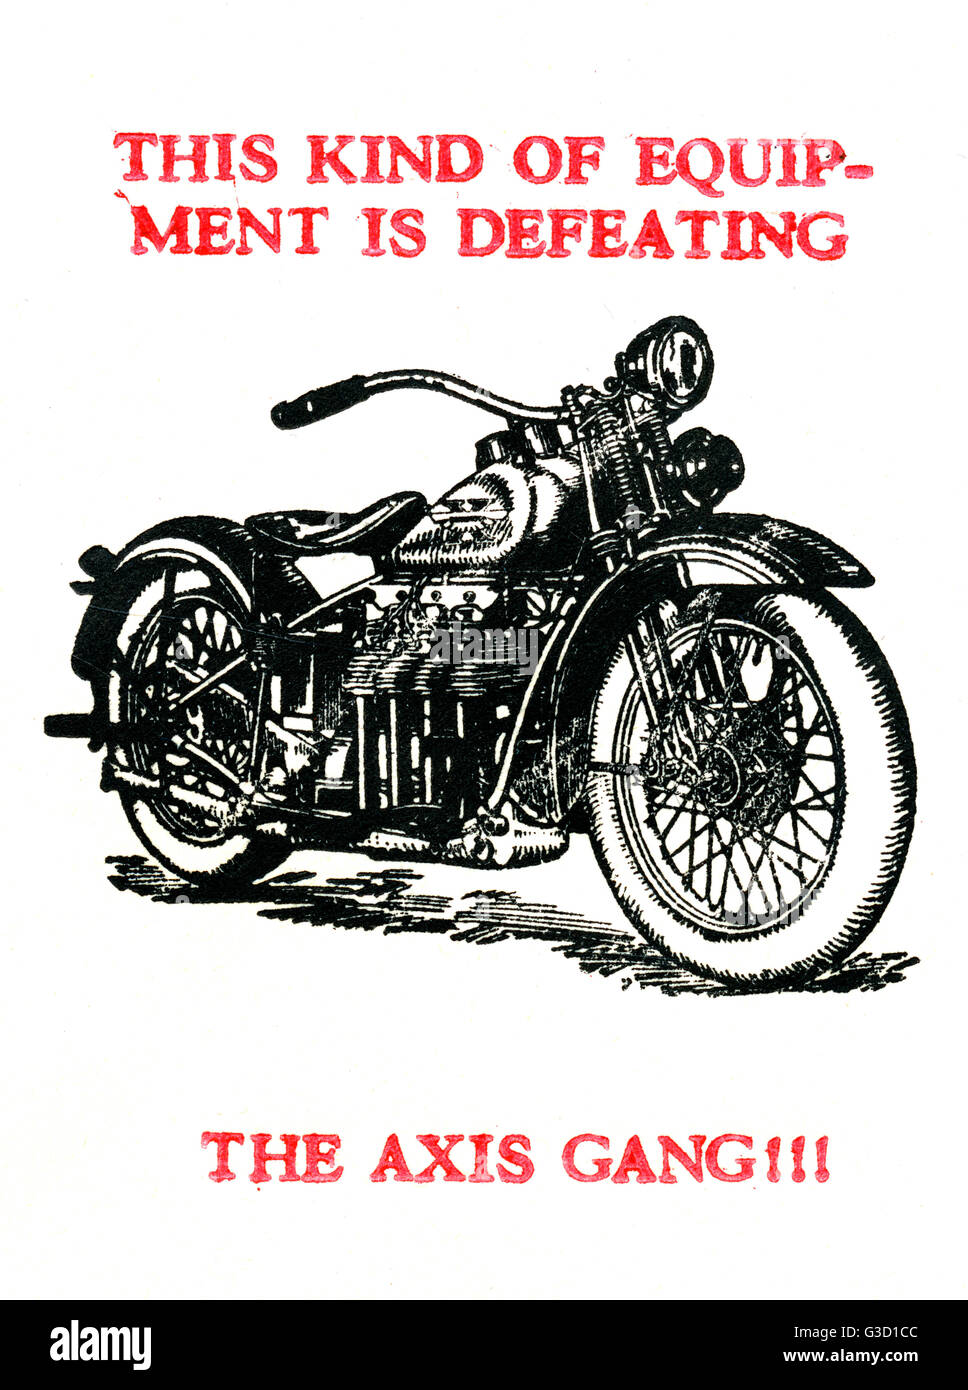 WW2 - Propaganda first day cover - This kind of equipment is defeating the Axis Gang!     Date: circa 1943 - Stock Image